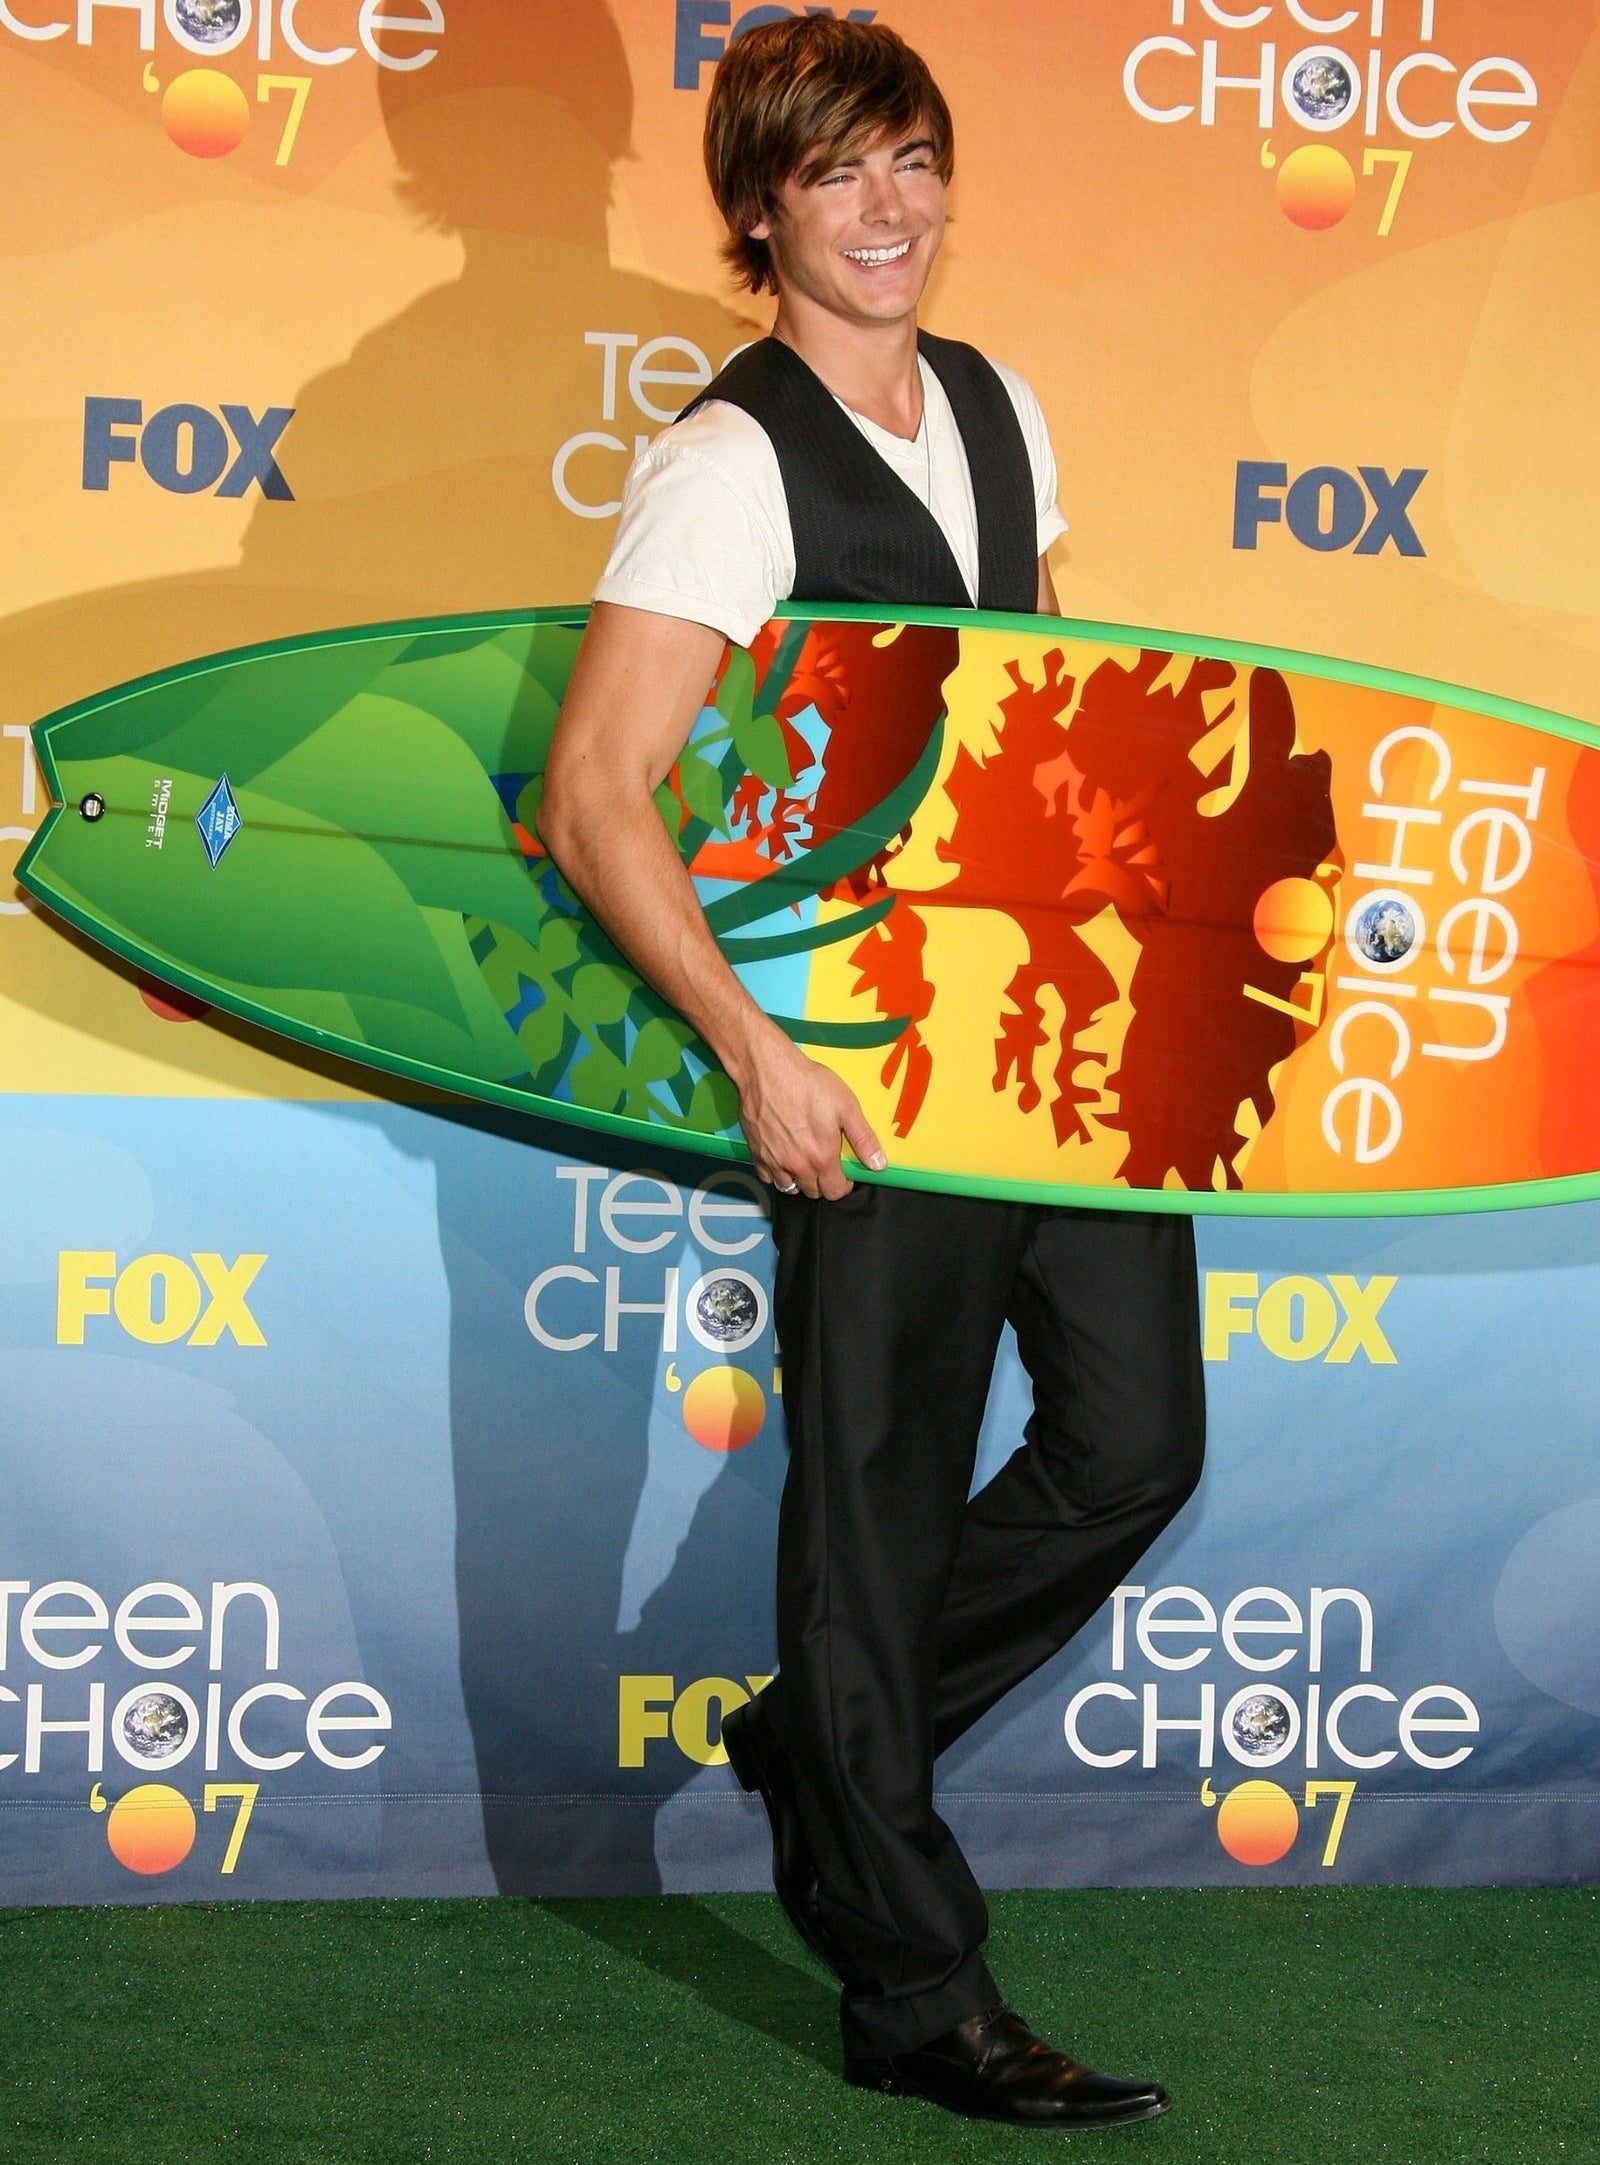 His early days of winning Teen Choice Awards.